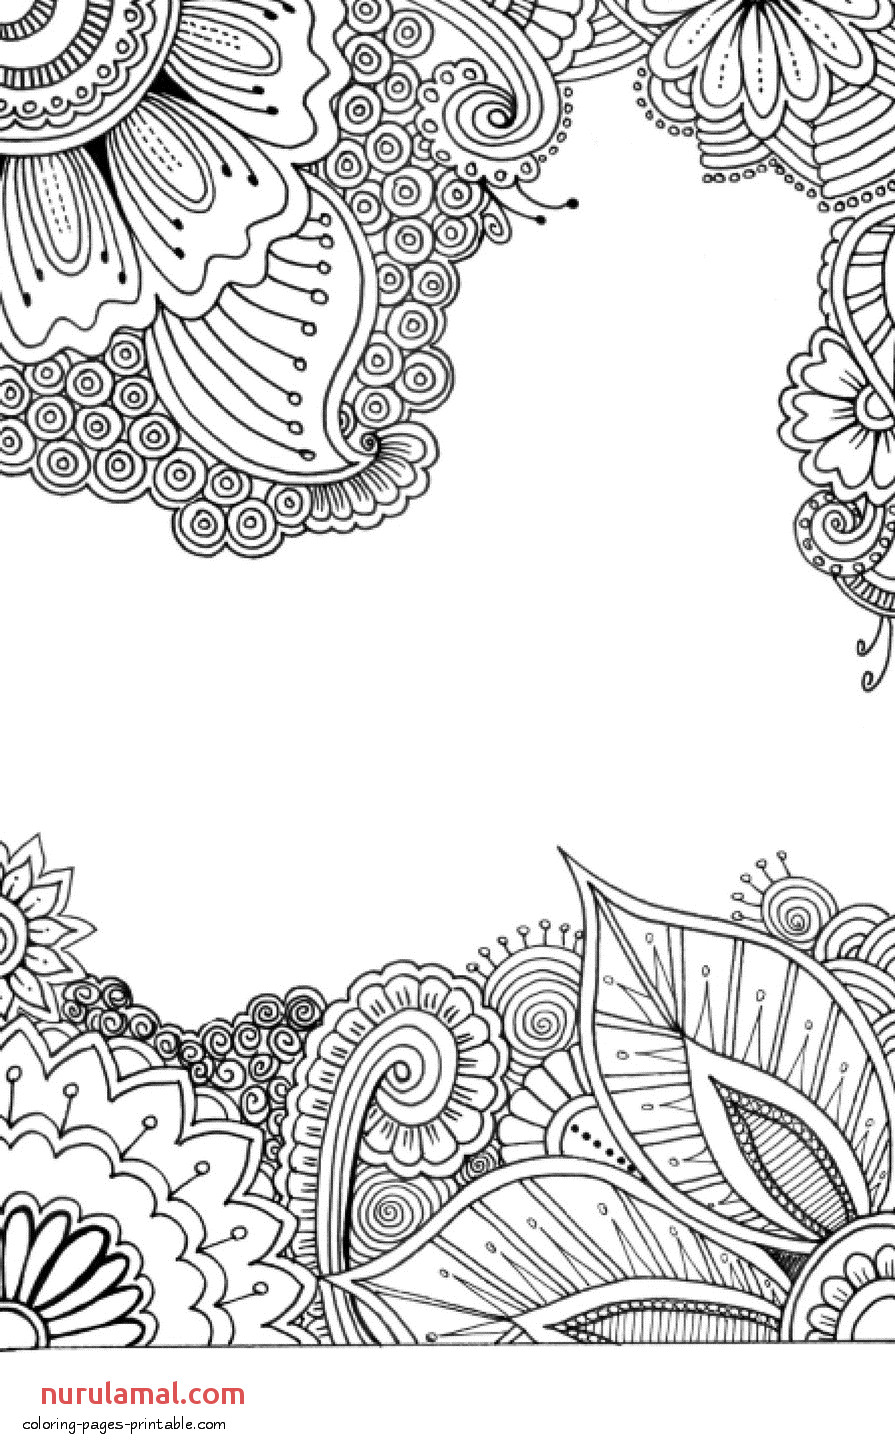 flower coloring pages for adults 119 GIF